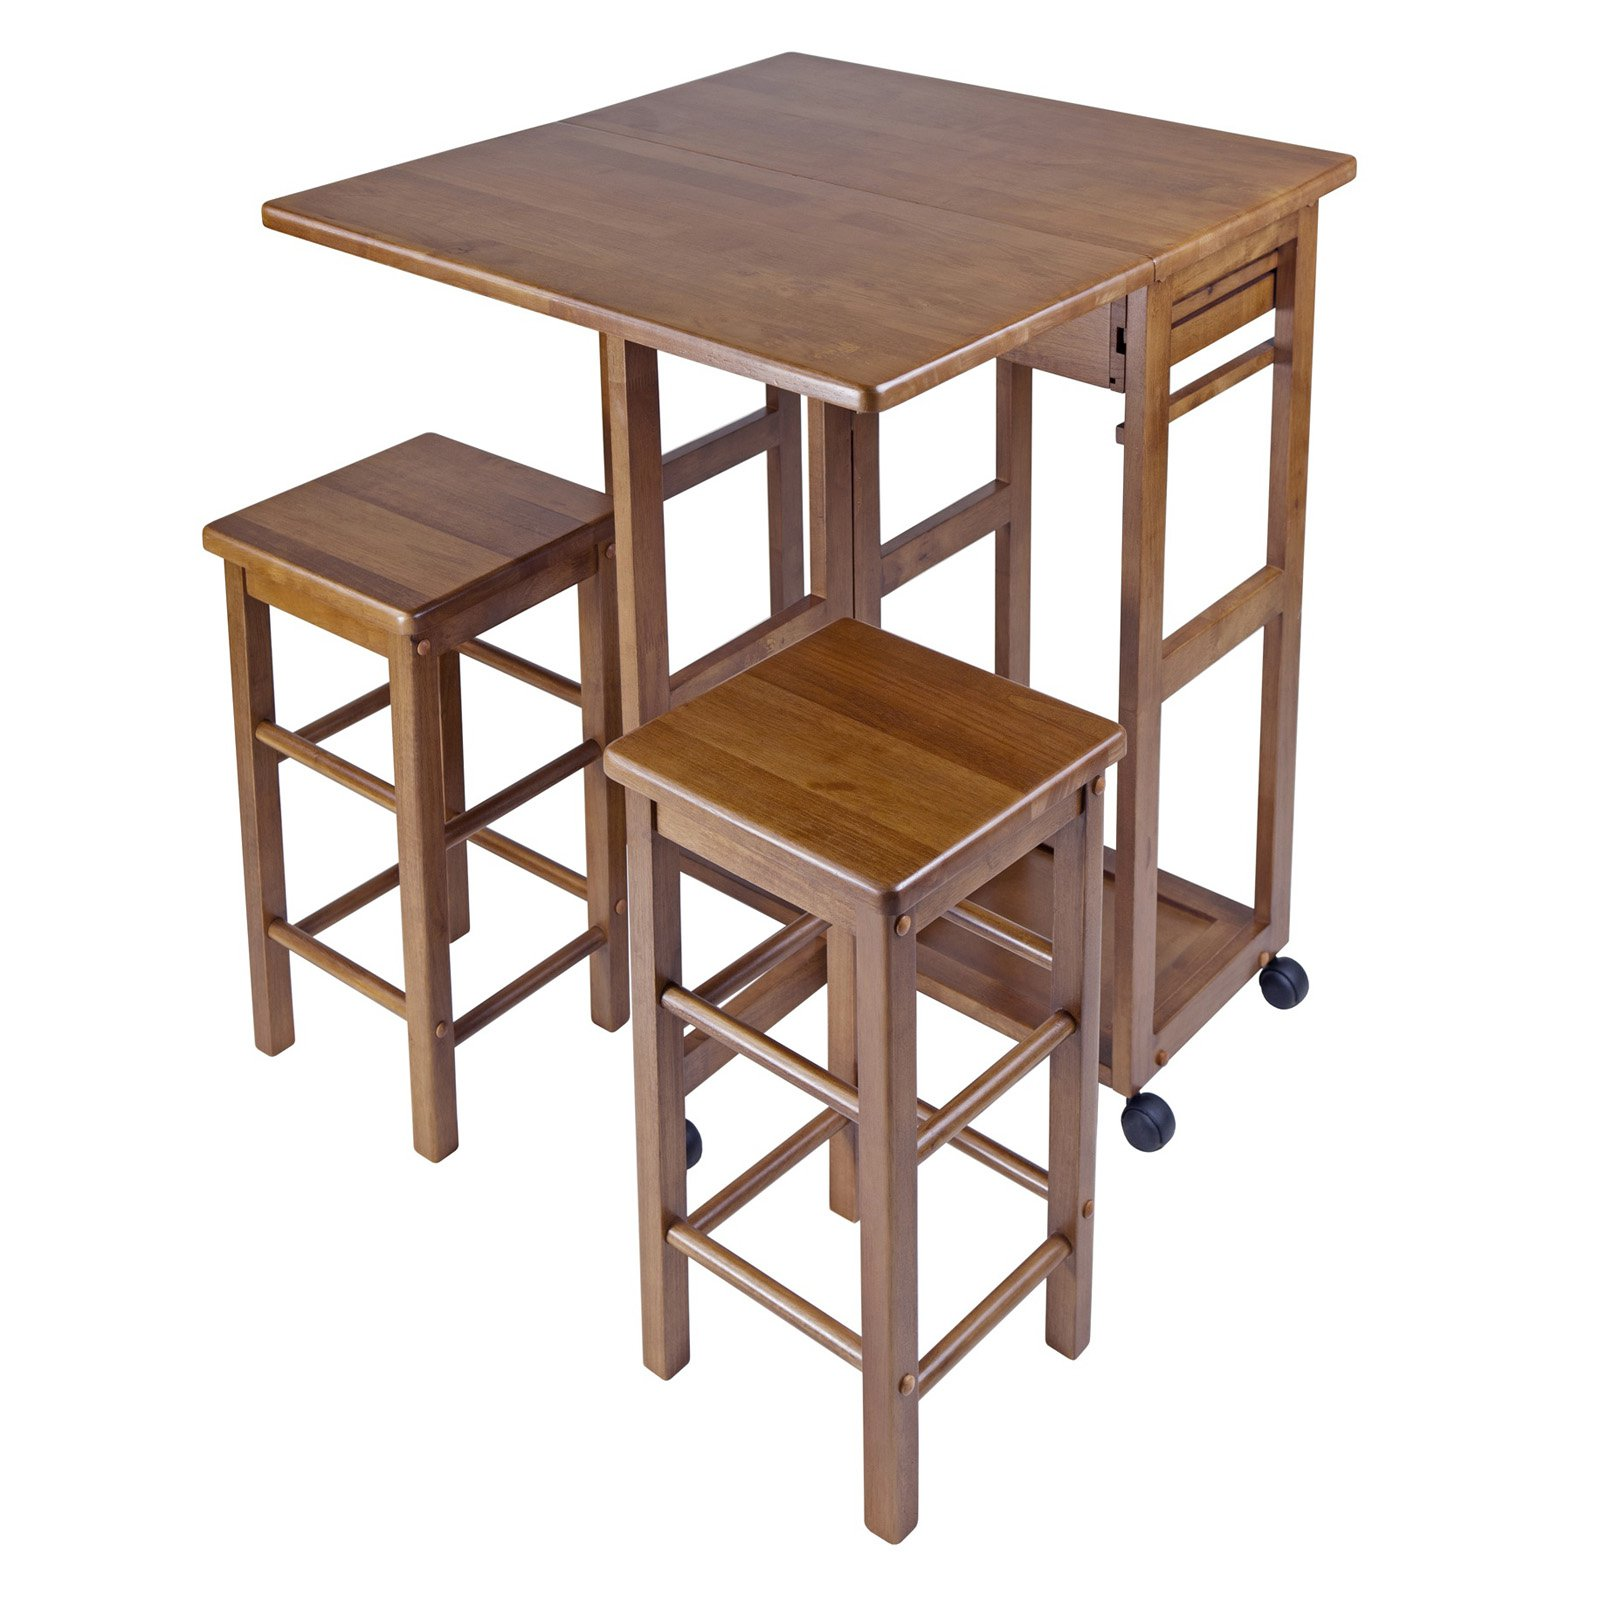 Winsome wood suzanne 3 piece kitchen cart with stools drop leaf winsome wood suzanne 3 piece kitchen cart with stools drop leaf teak finish walmart watchthetrailerfo